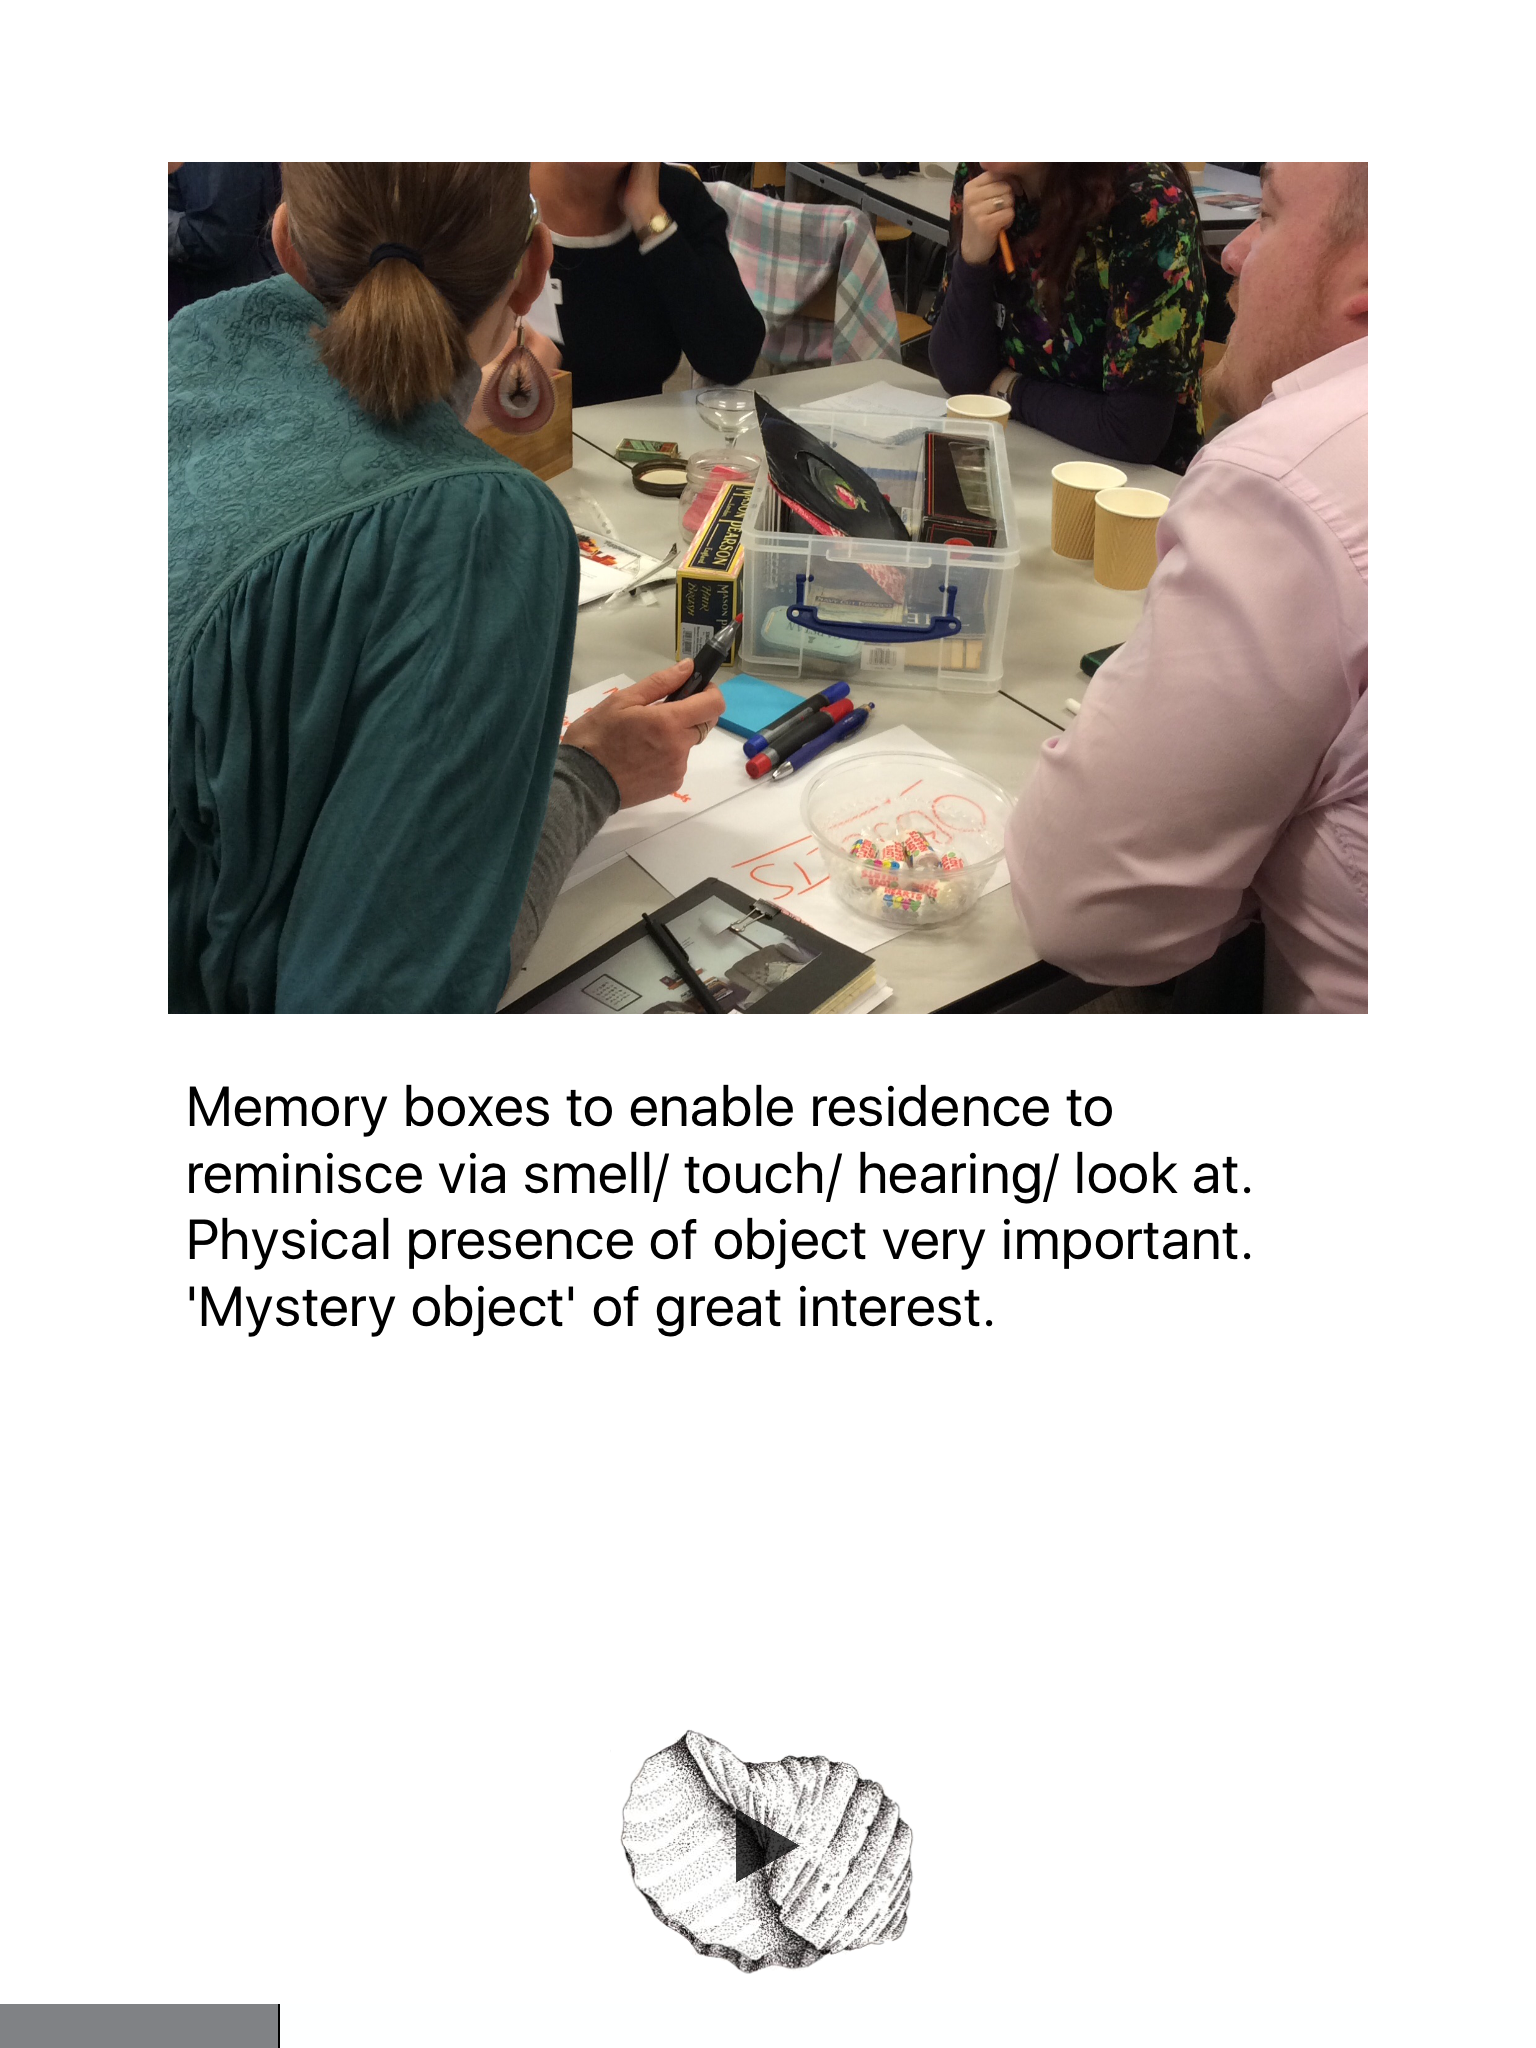 Image from objects discussion on the Tangible Memories App